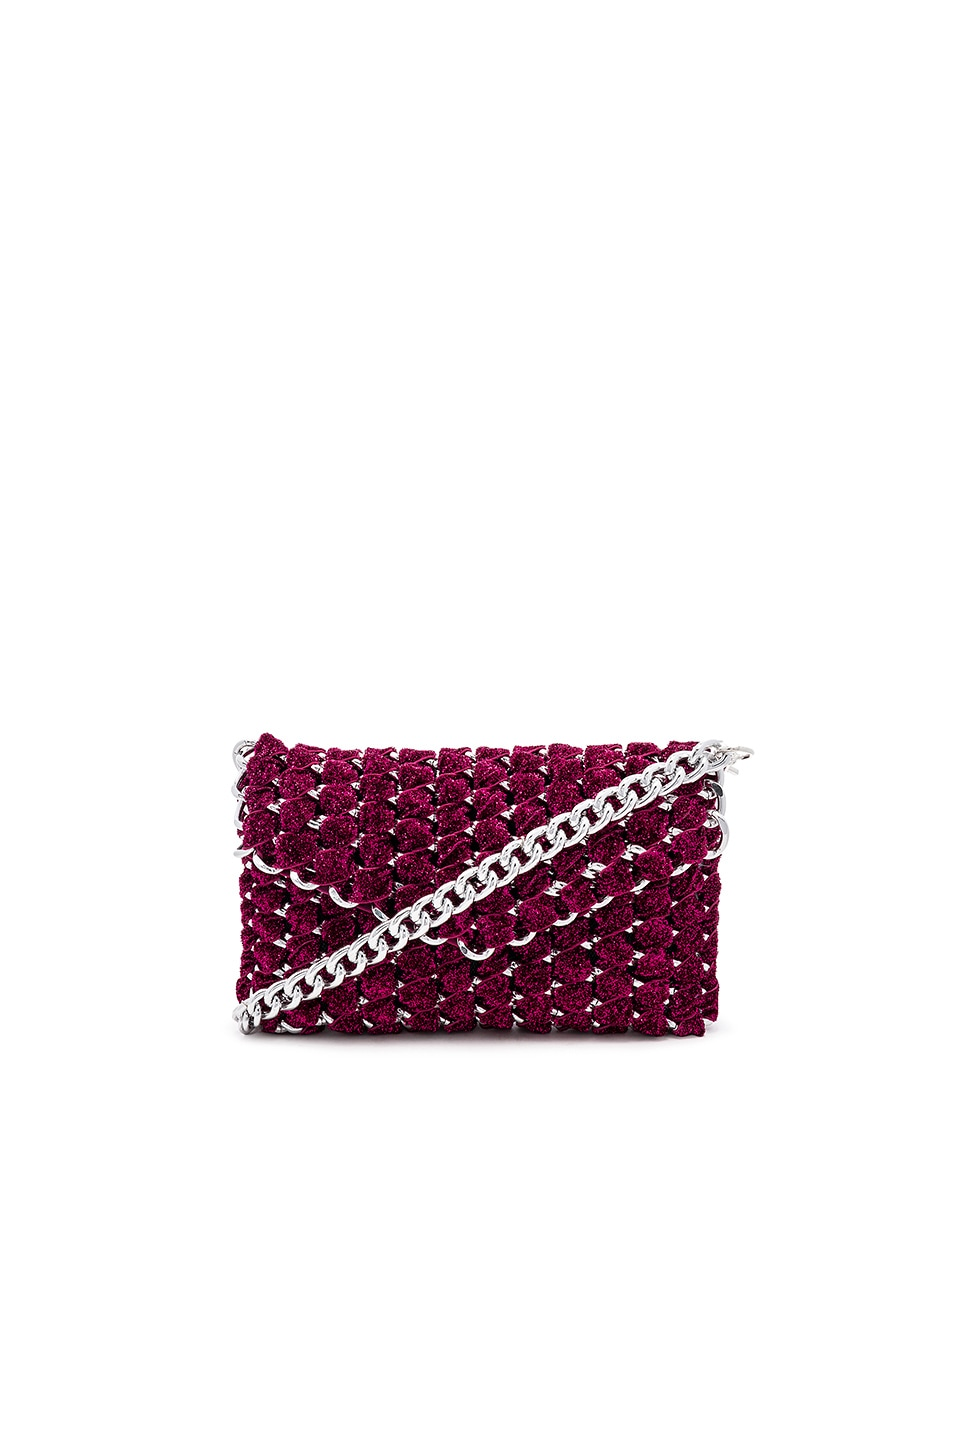 TAMBONITA Eve Shimmer Clutch with Silver Chain in Fuchsia